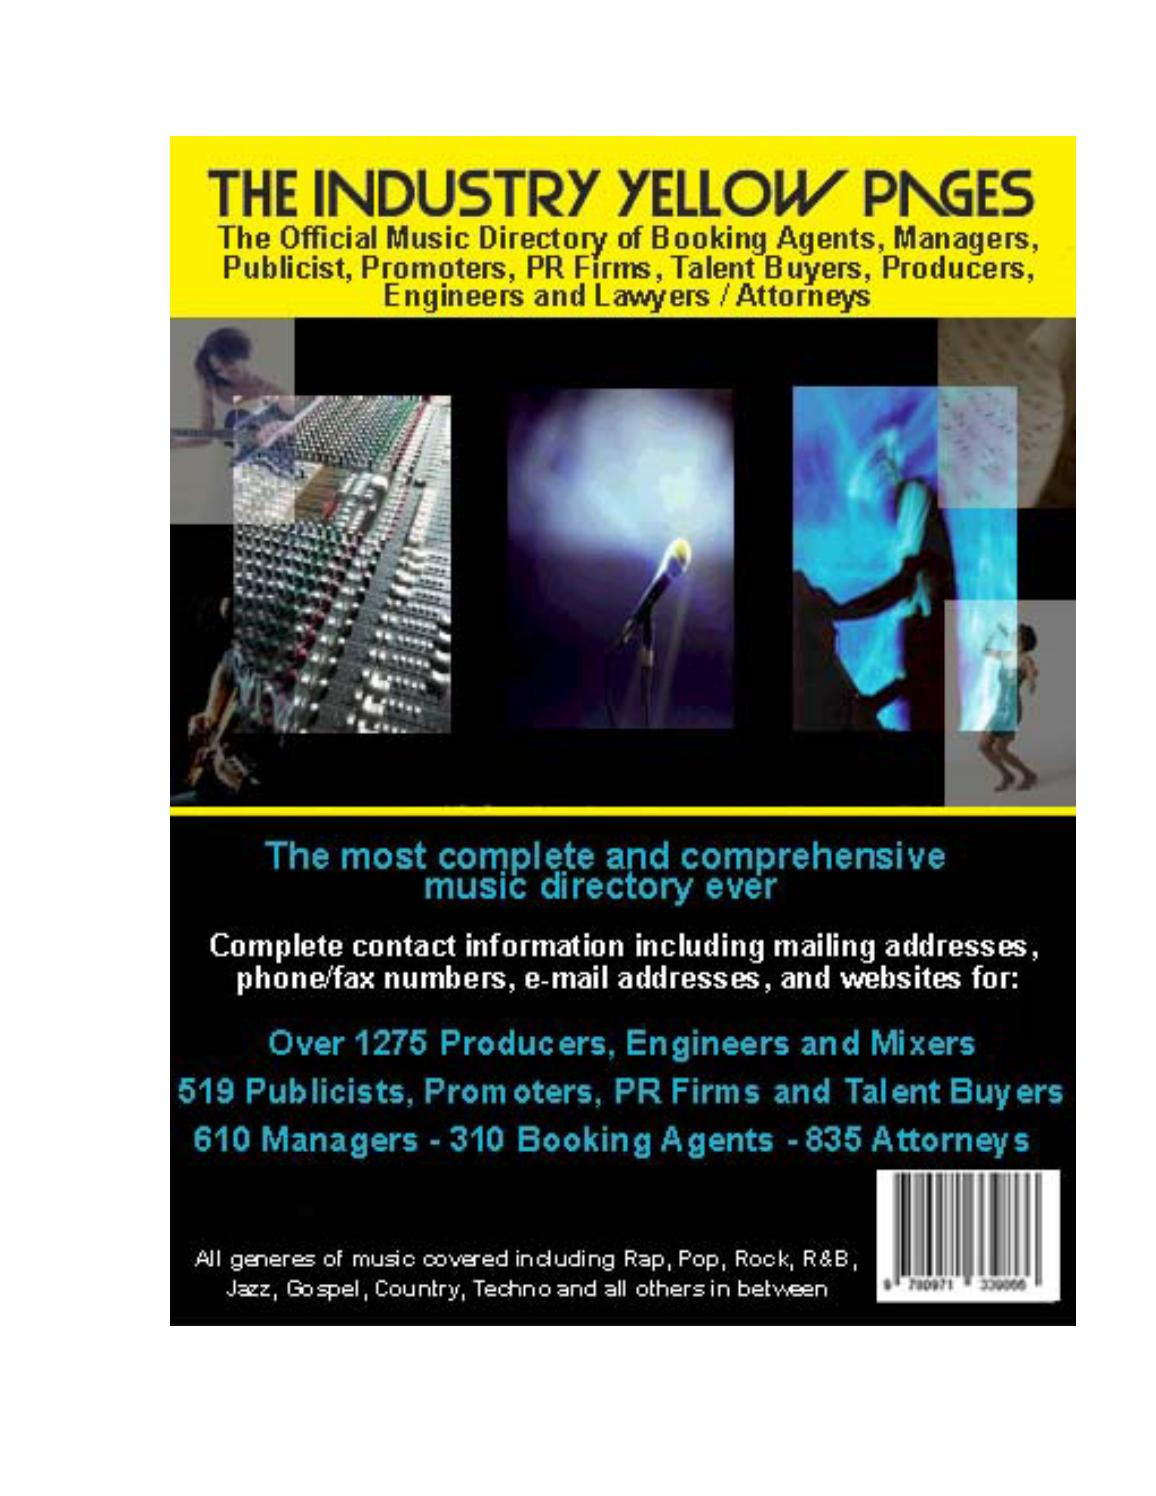 directory4 booking agents, managers by stopbeefinradio - issuu